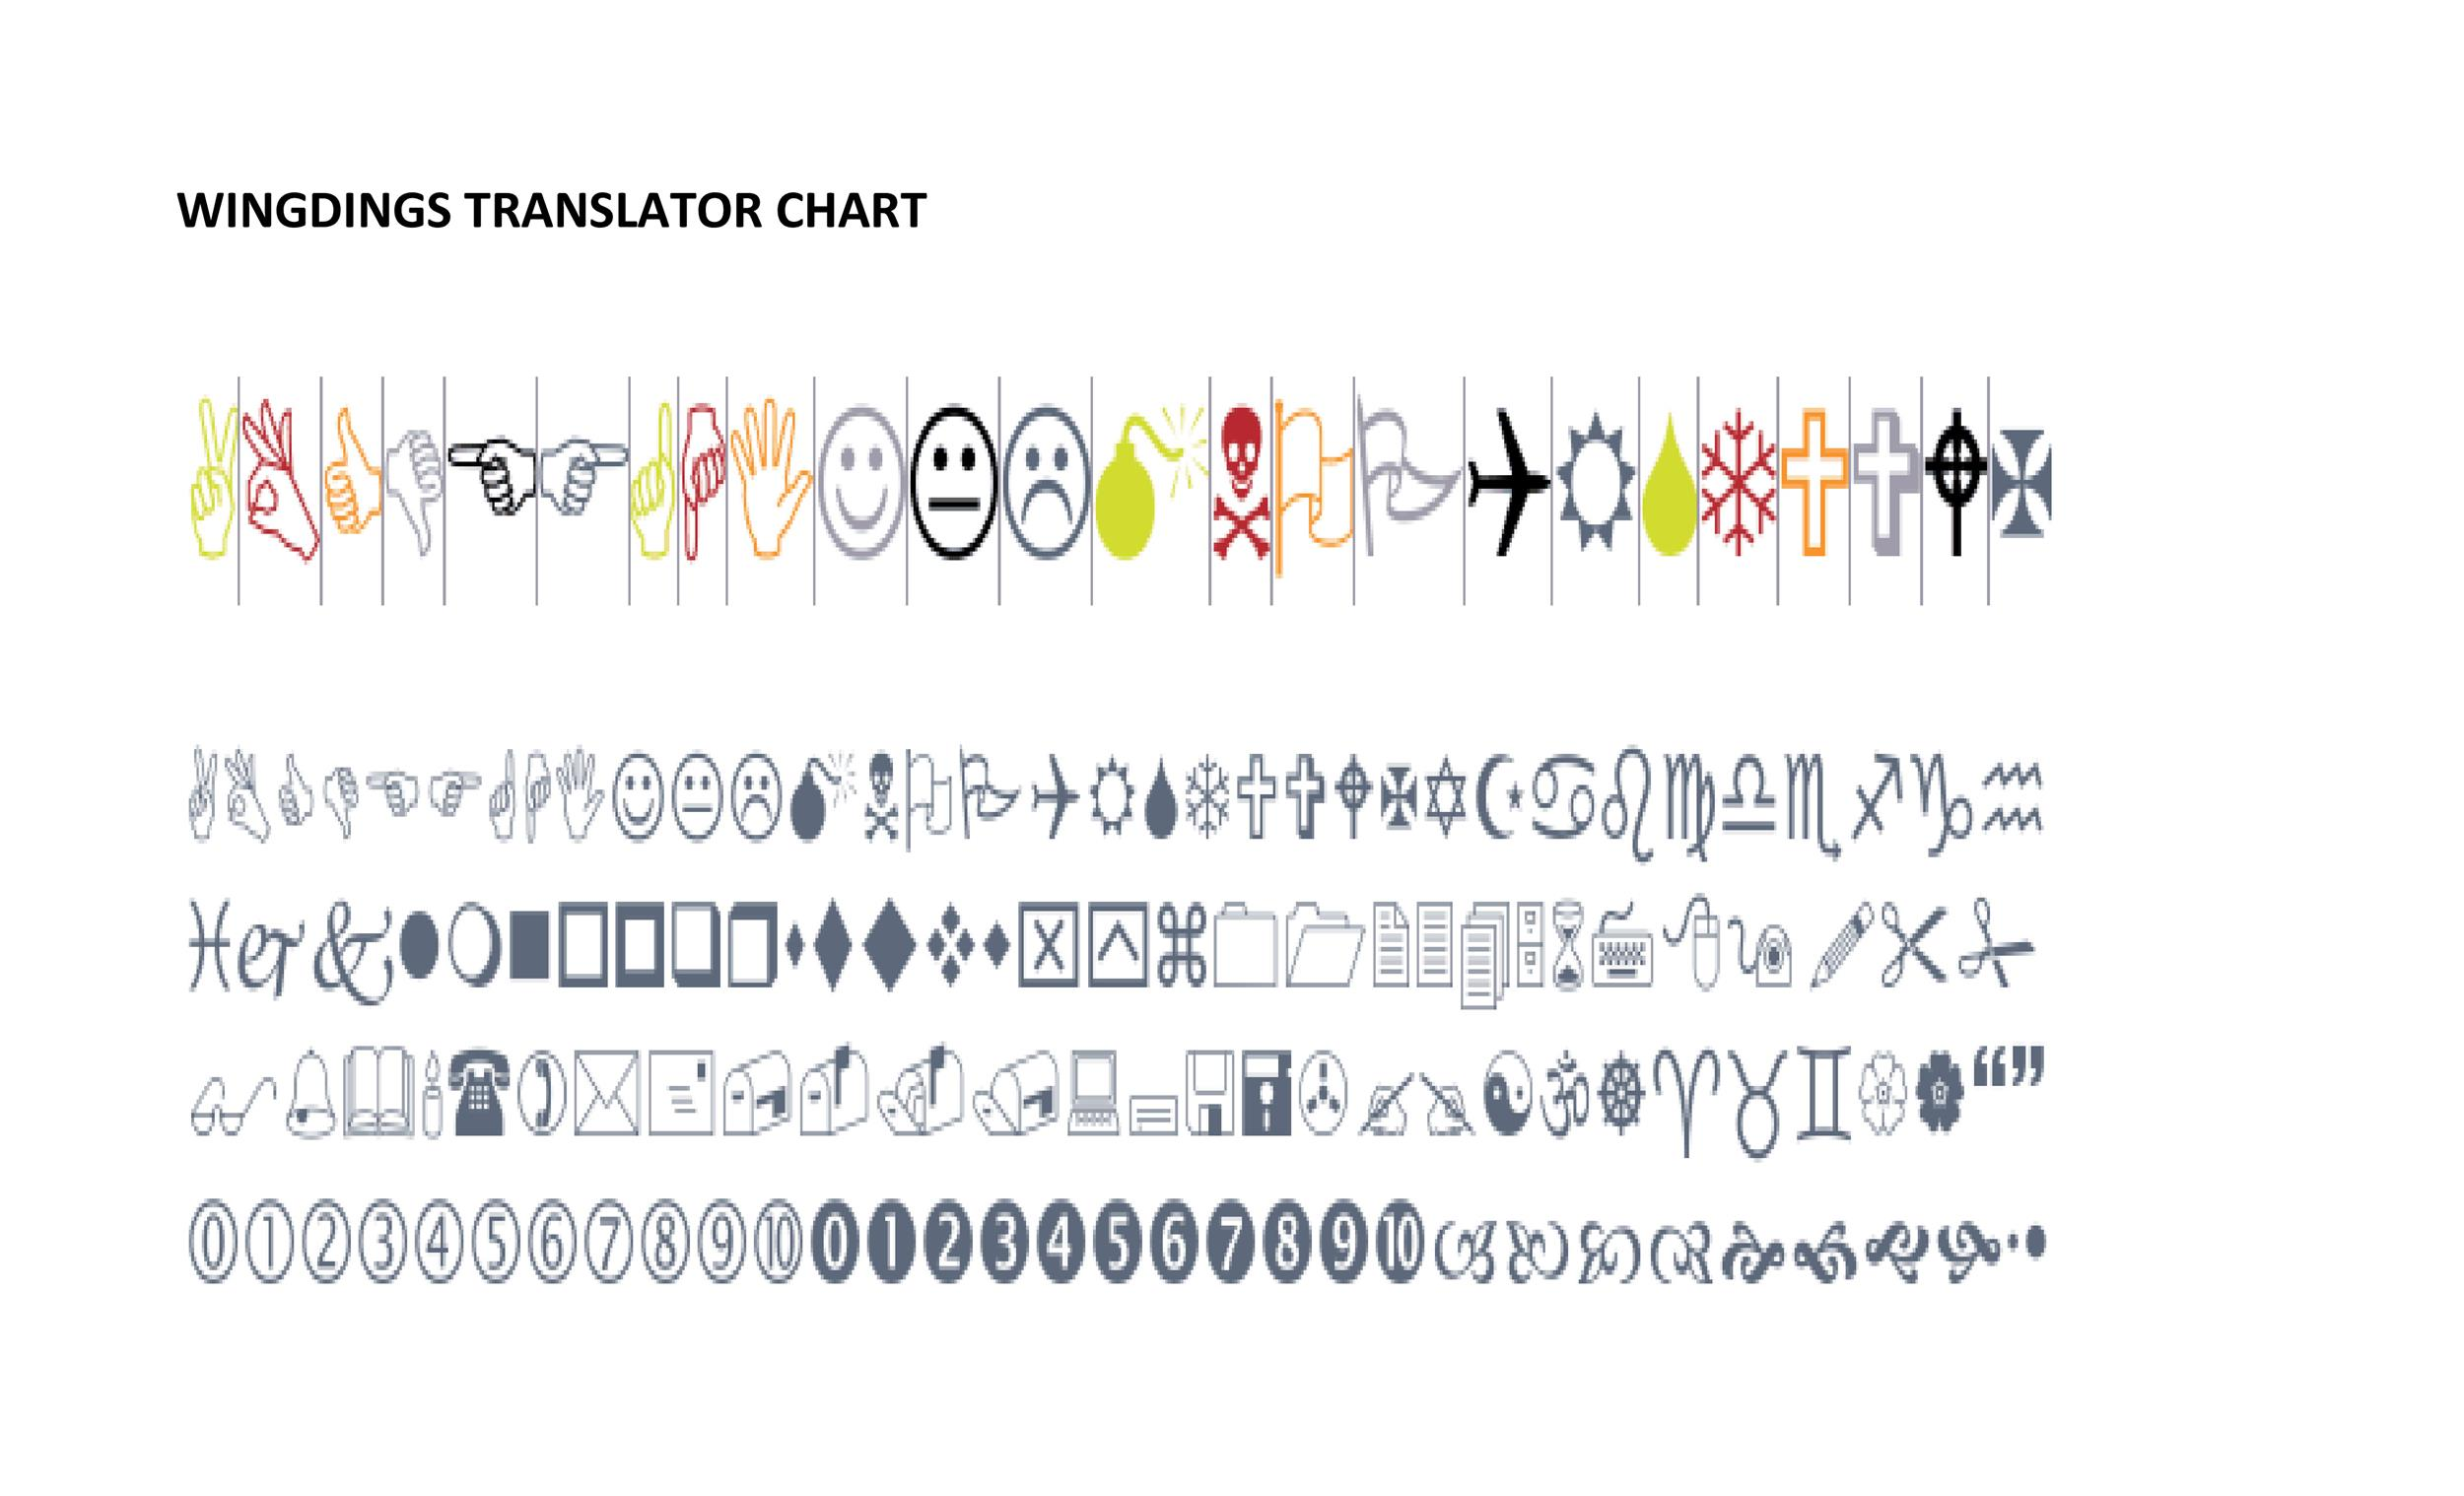 Free wingdings translator template 08